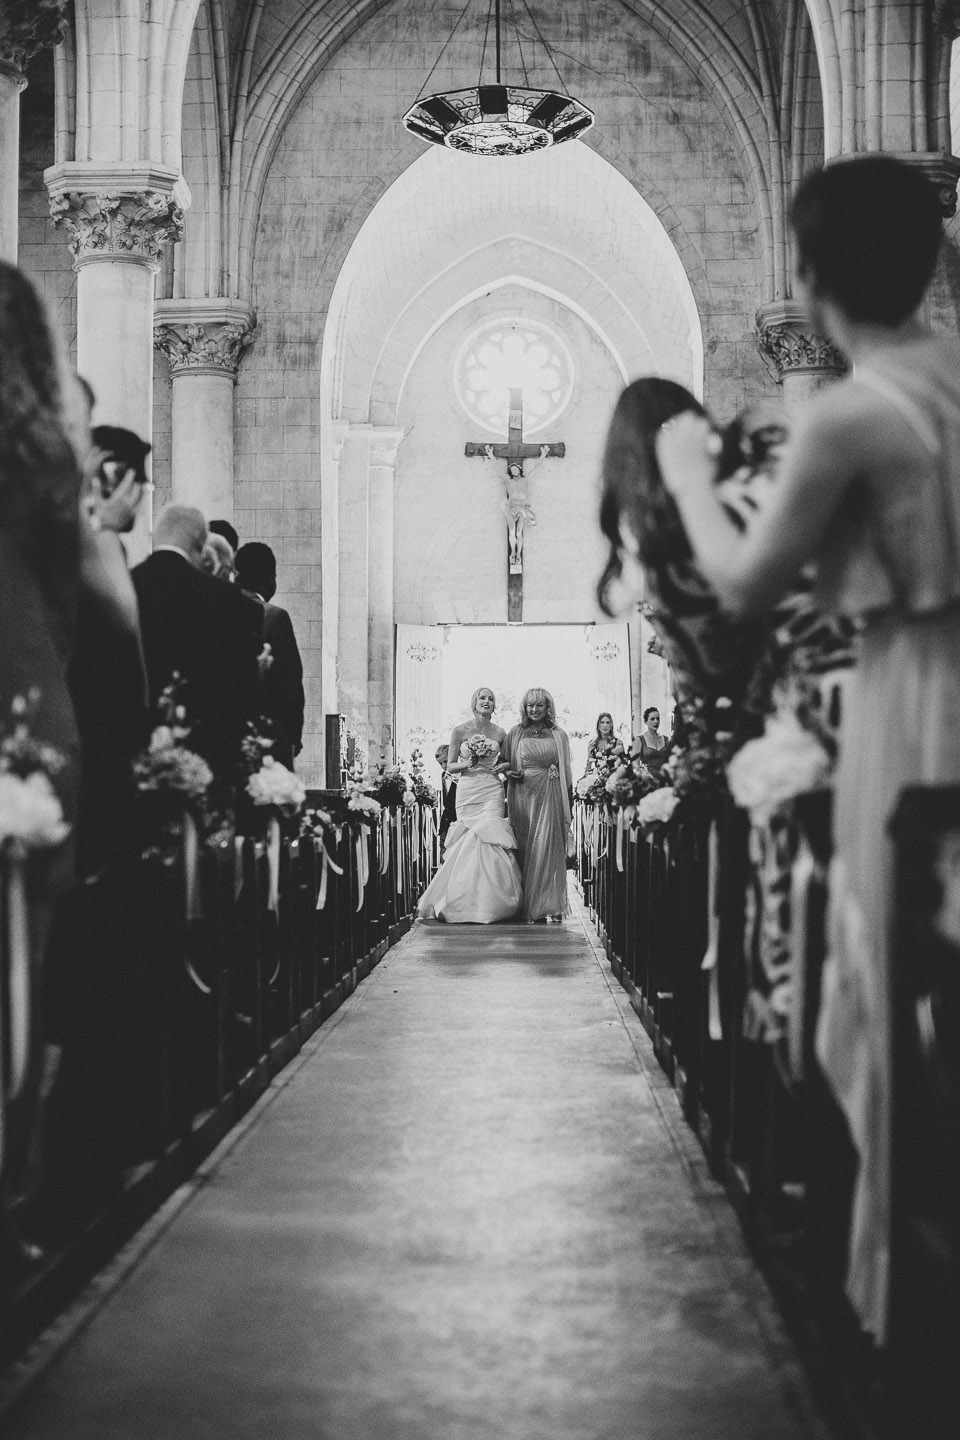 Weding_French_American_Loire_Chateau_Chambiers_JeanLaurentGaudy_054